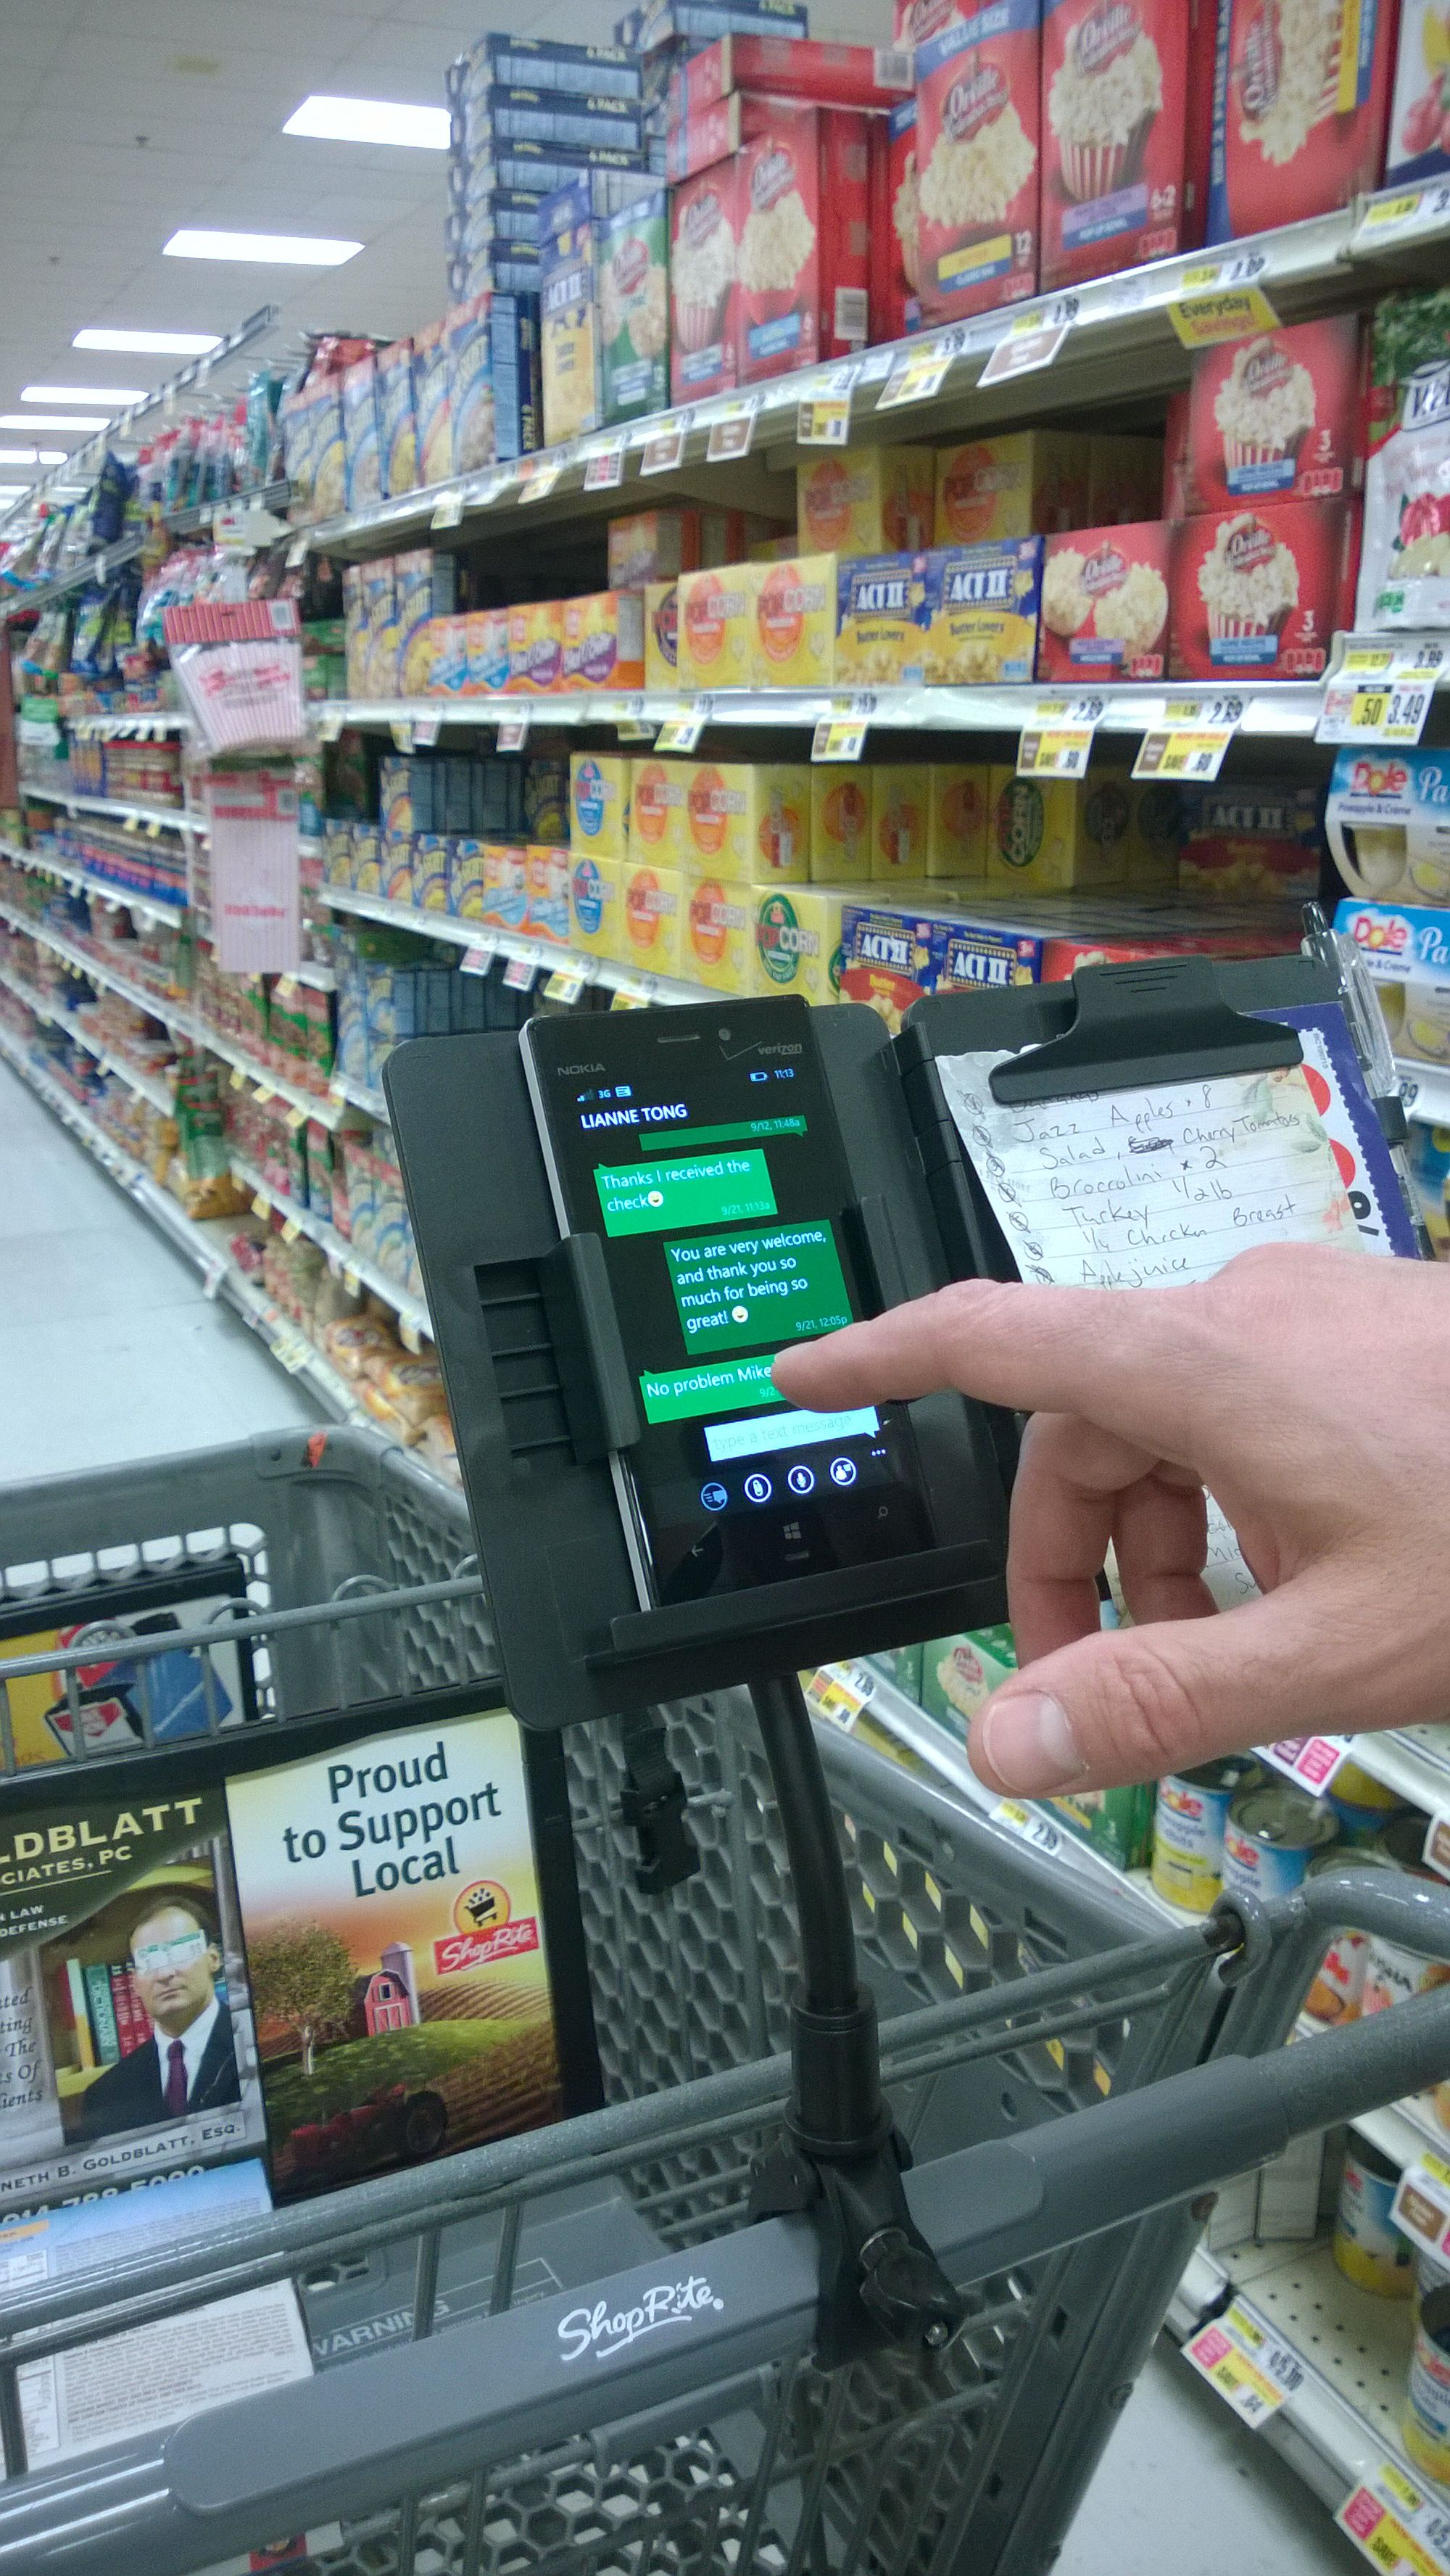 Skip the lines and save time while you shop easier, safer